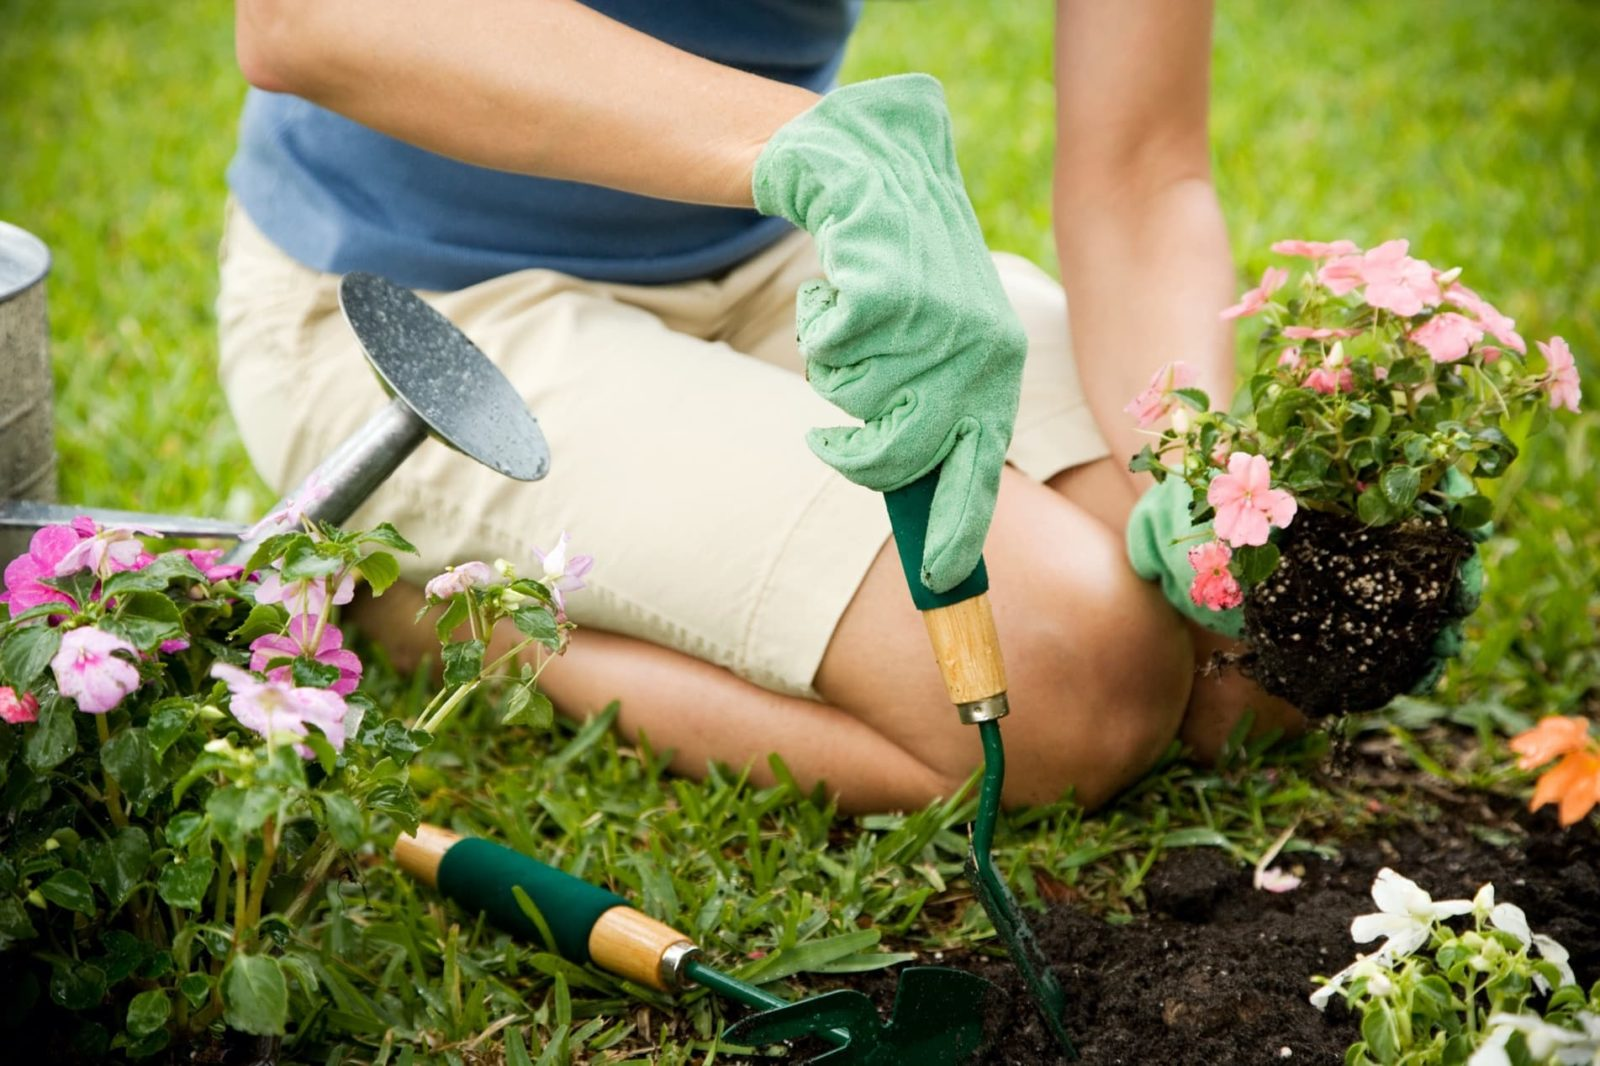 woman on her knees planting flowers